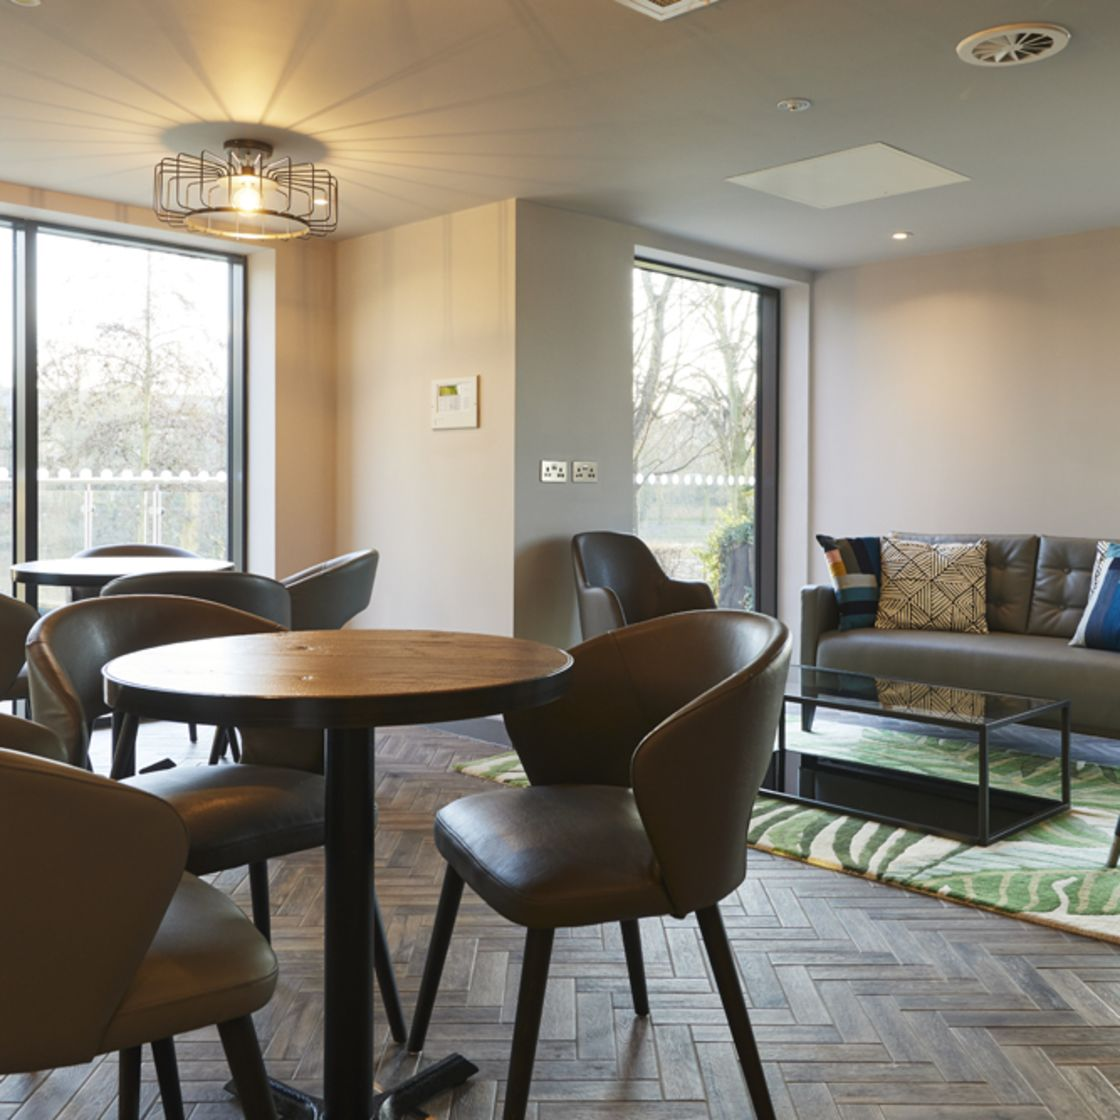 IconInc @ Roomzzz Pantry Coffee Shop and Lounge. Student Accommodation in York